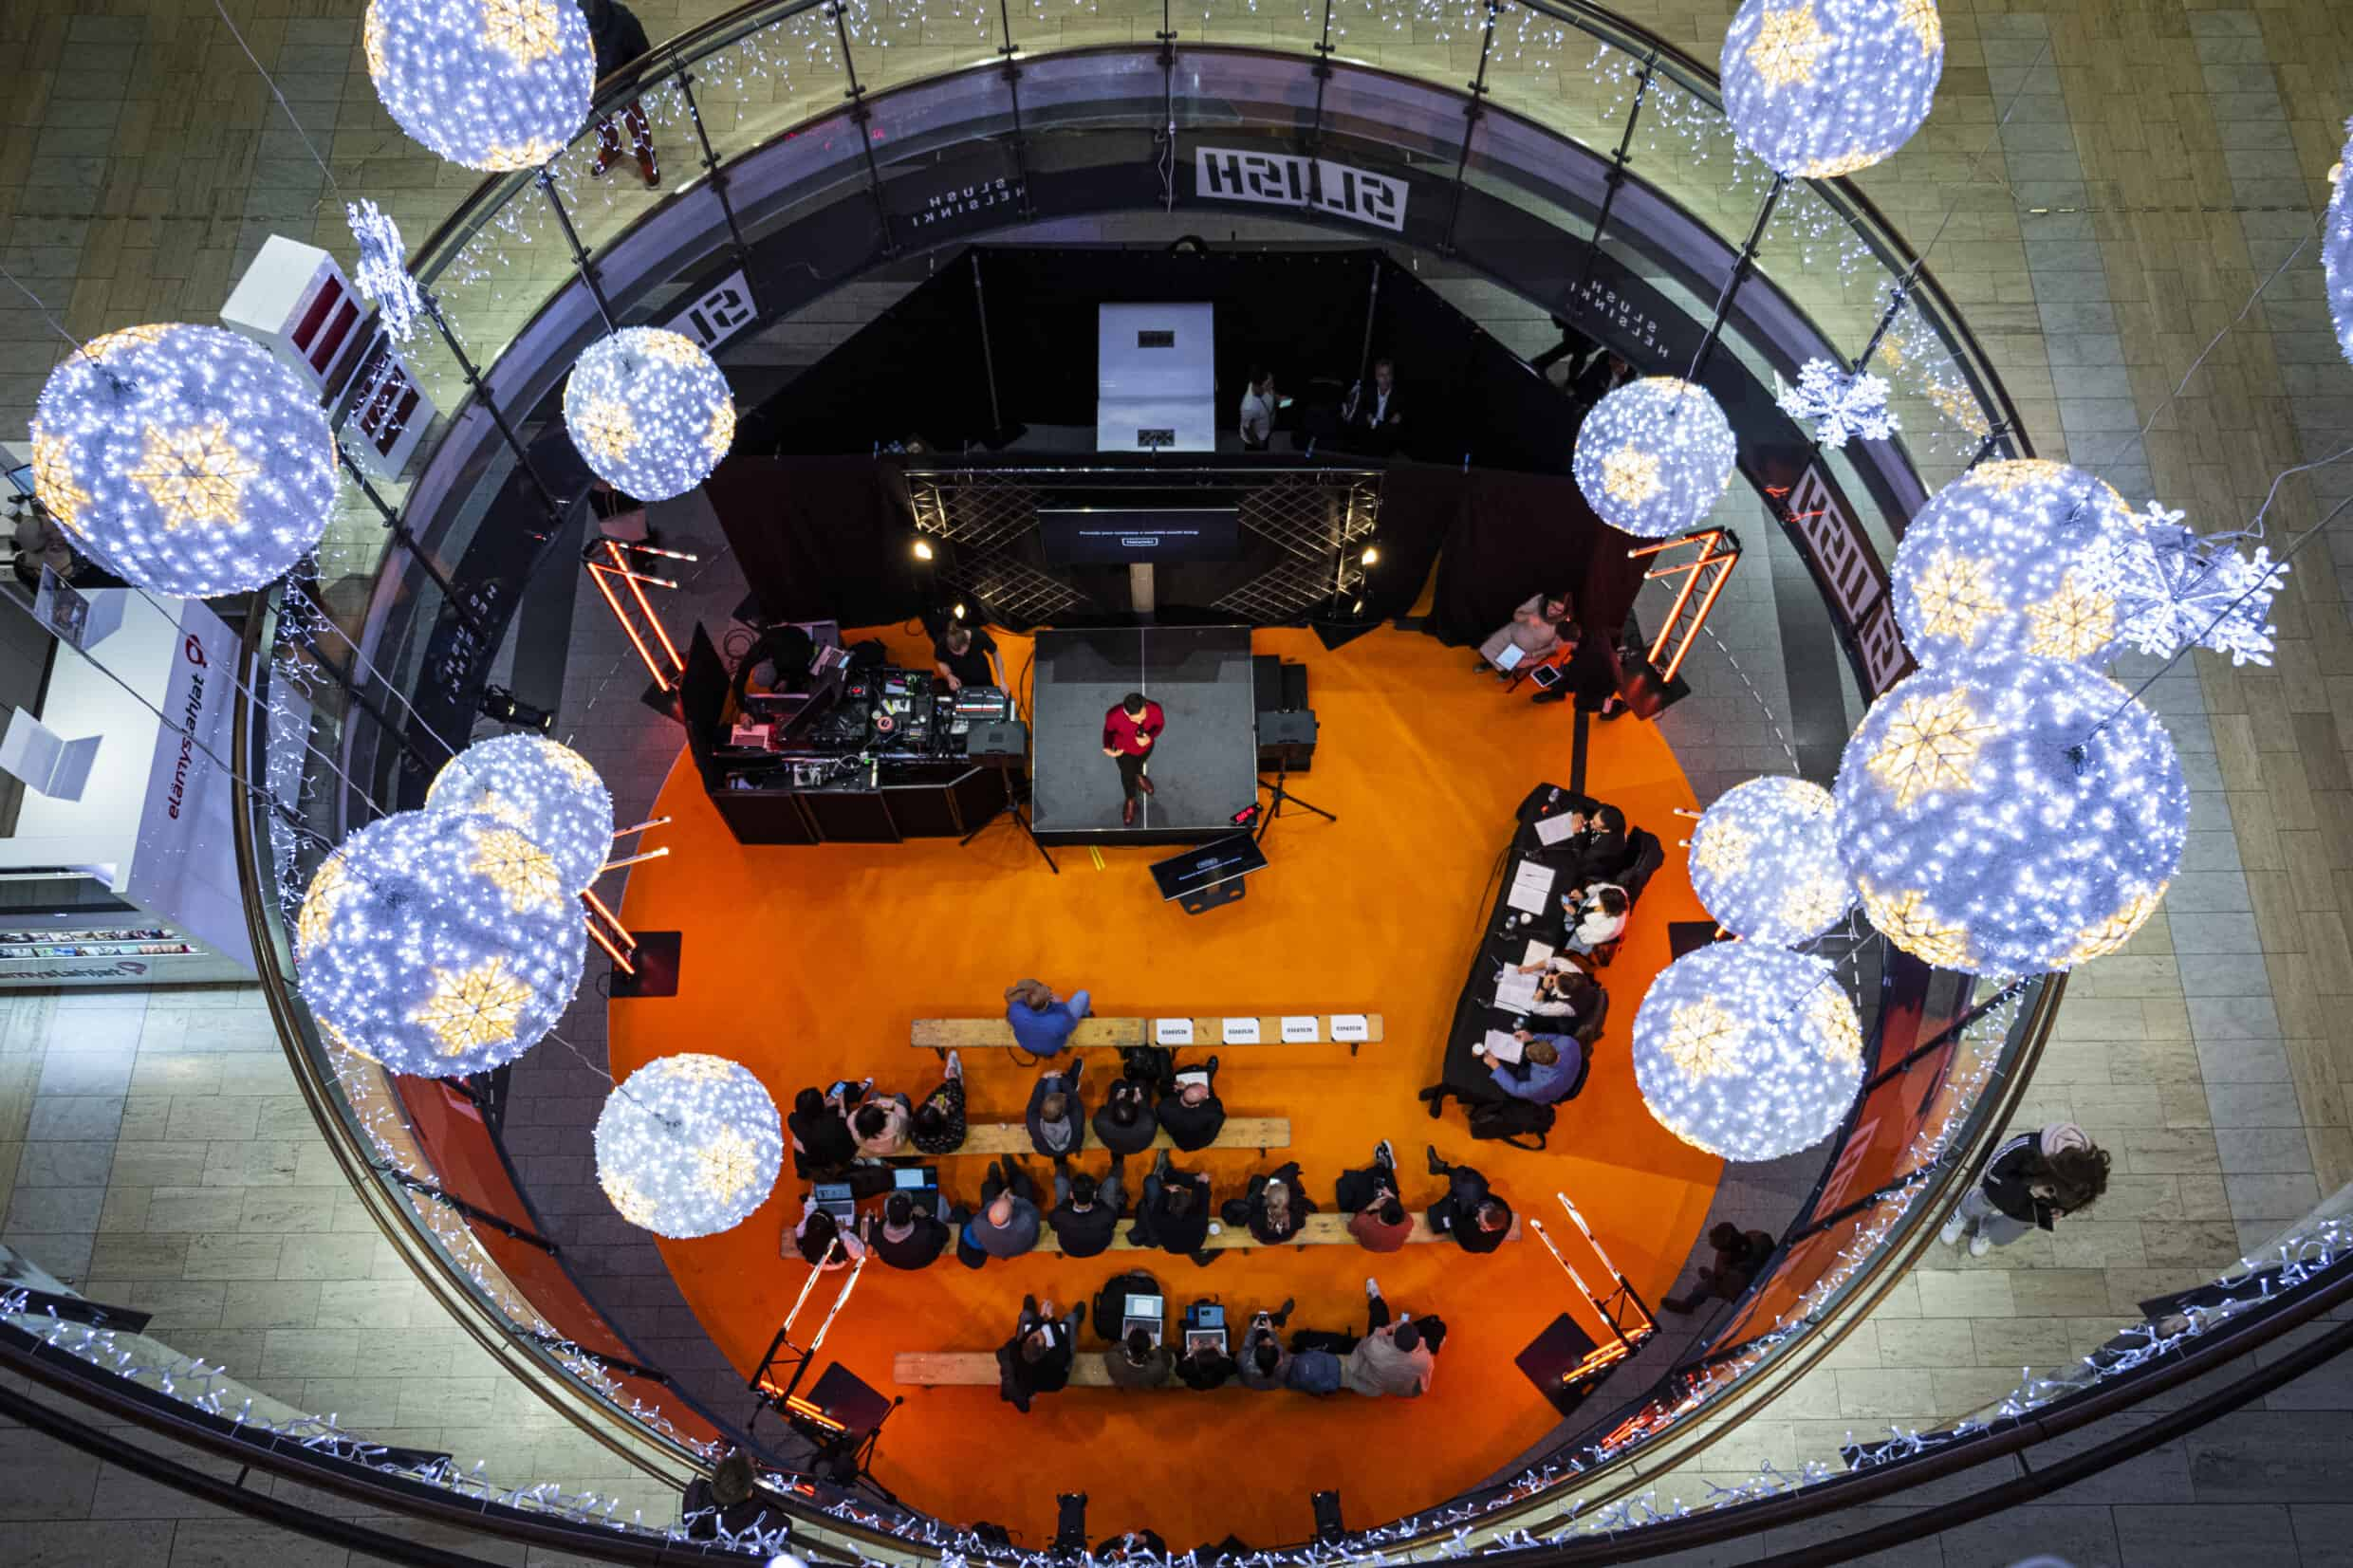 View of the stage and audience from above.